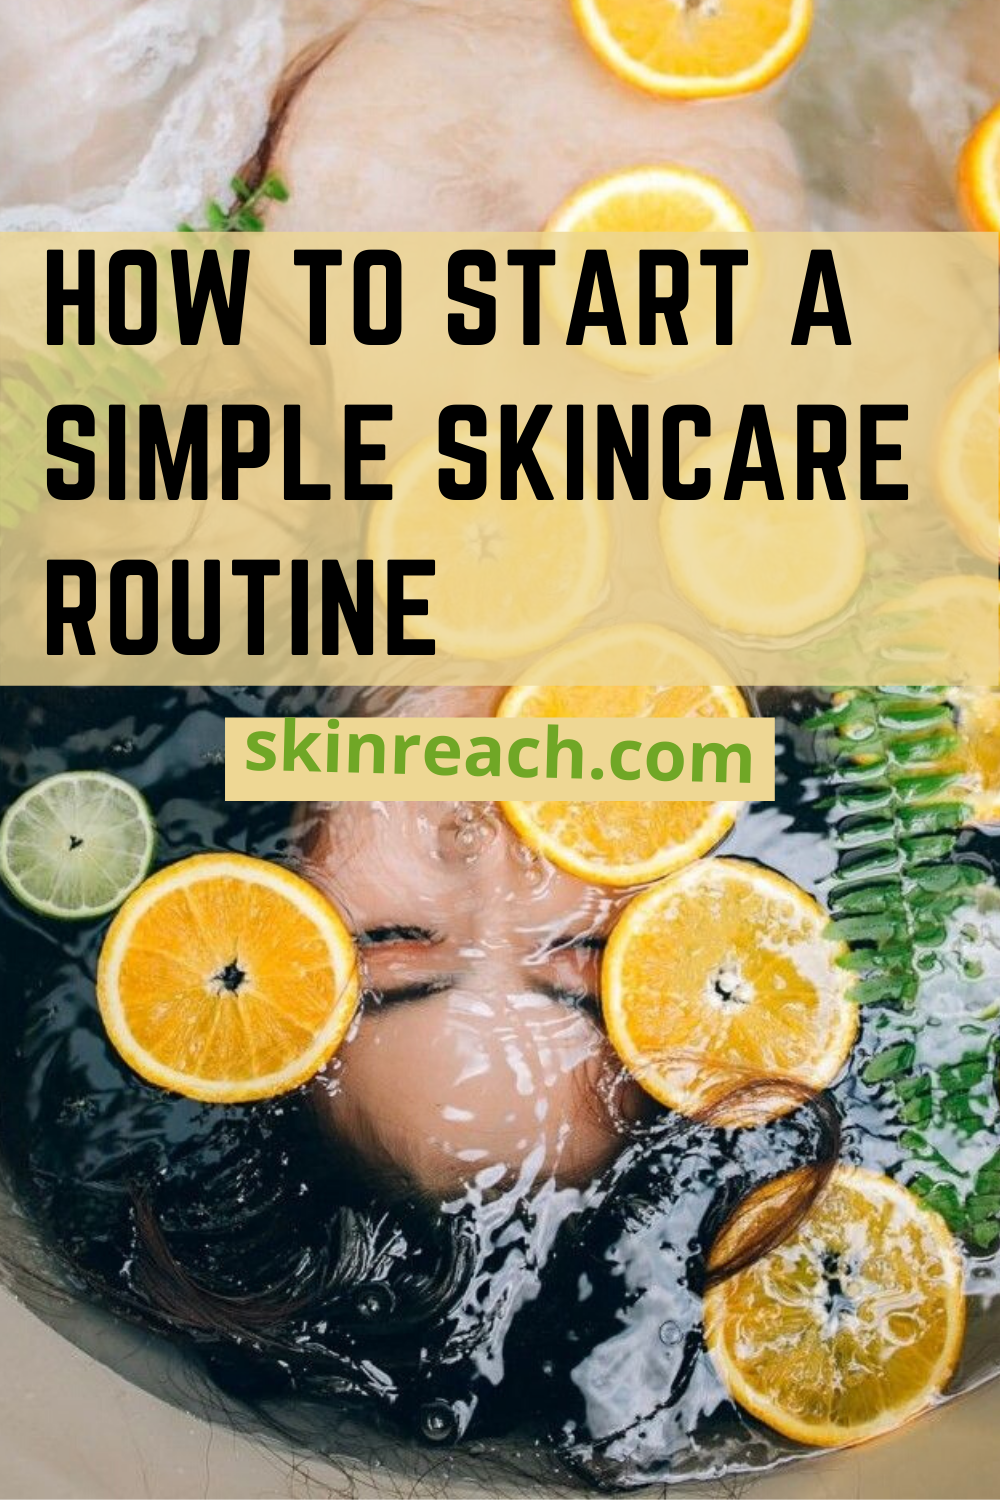 What Are The Benefits Of Having A Simple Skincare Routine Simple Skincare Routine Skin Care Routine Simple Skincare